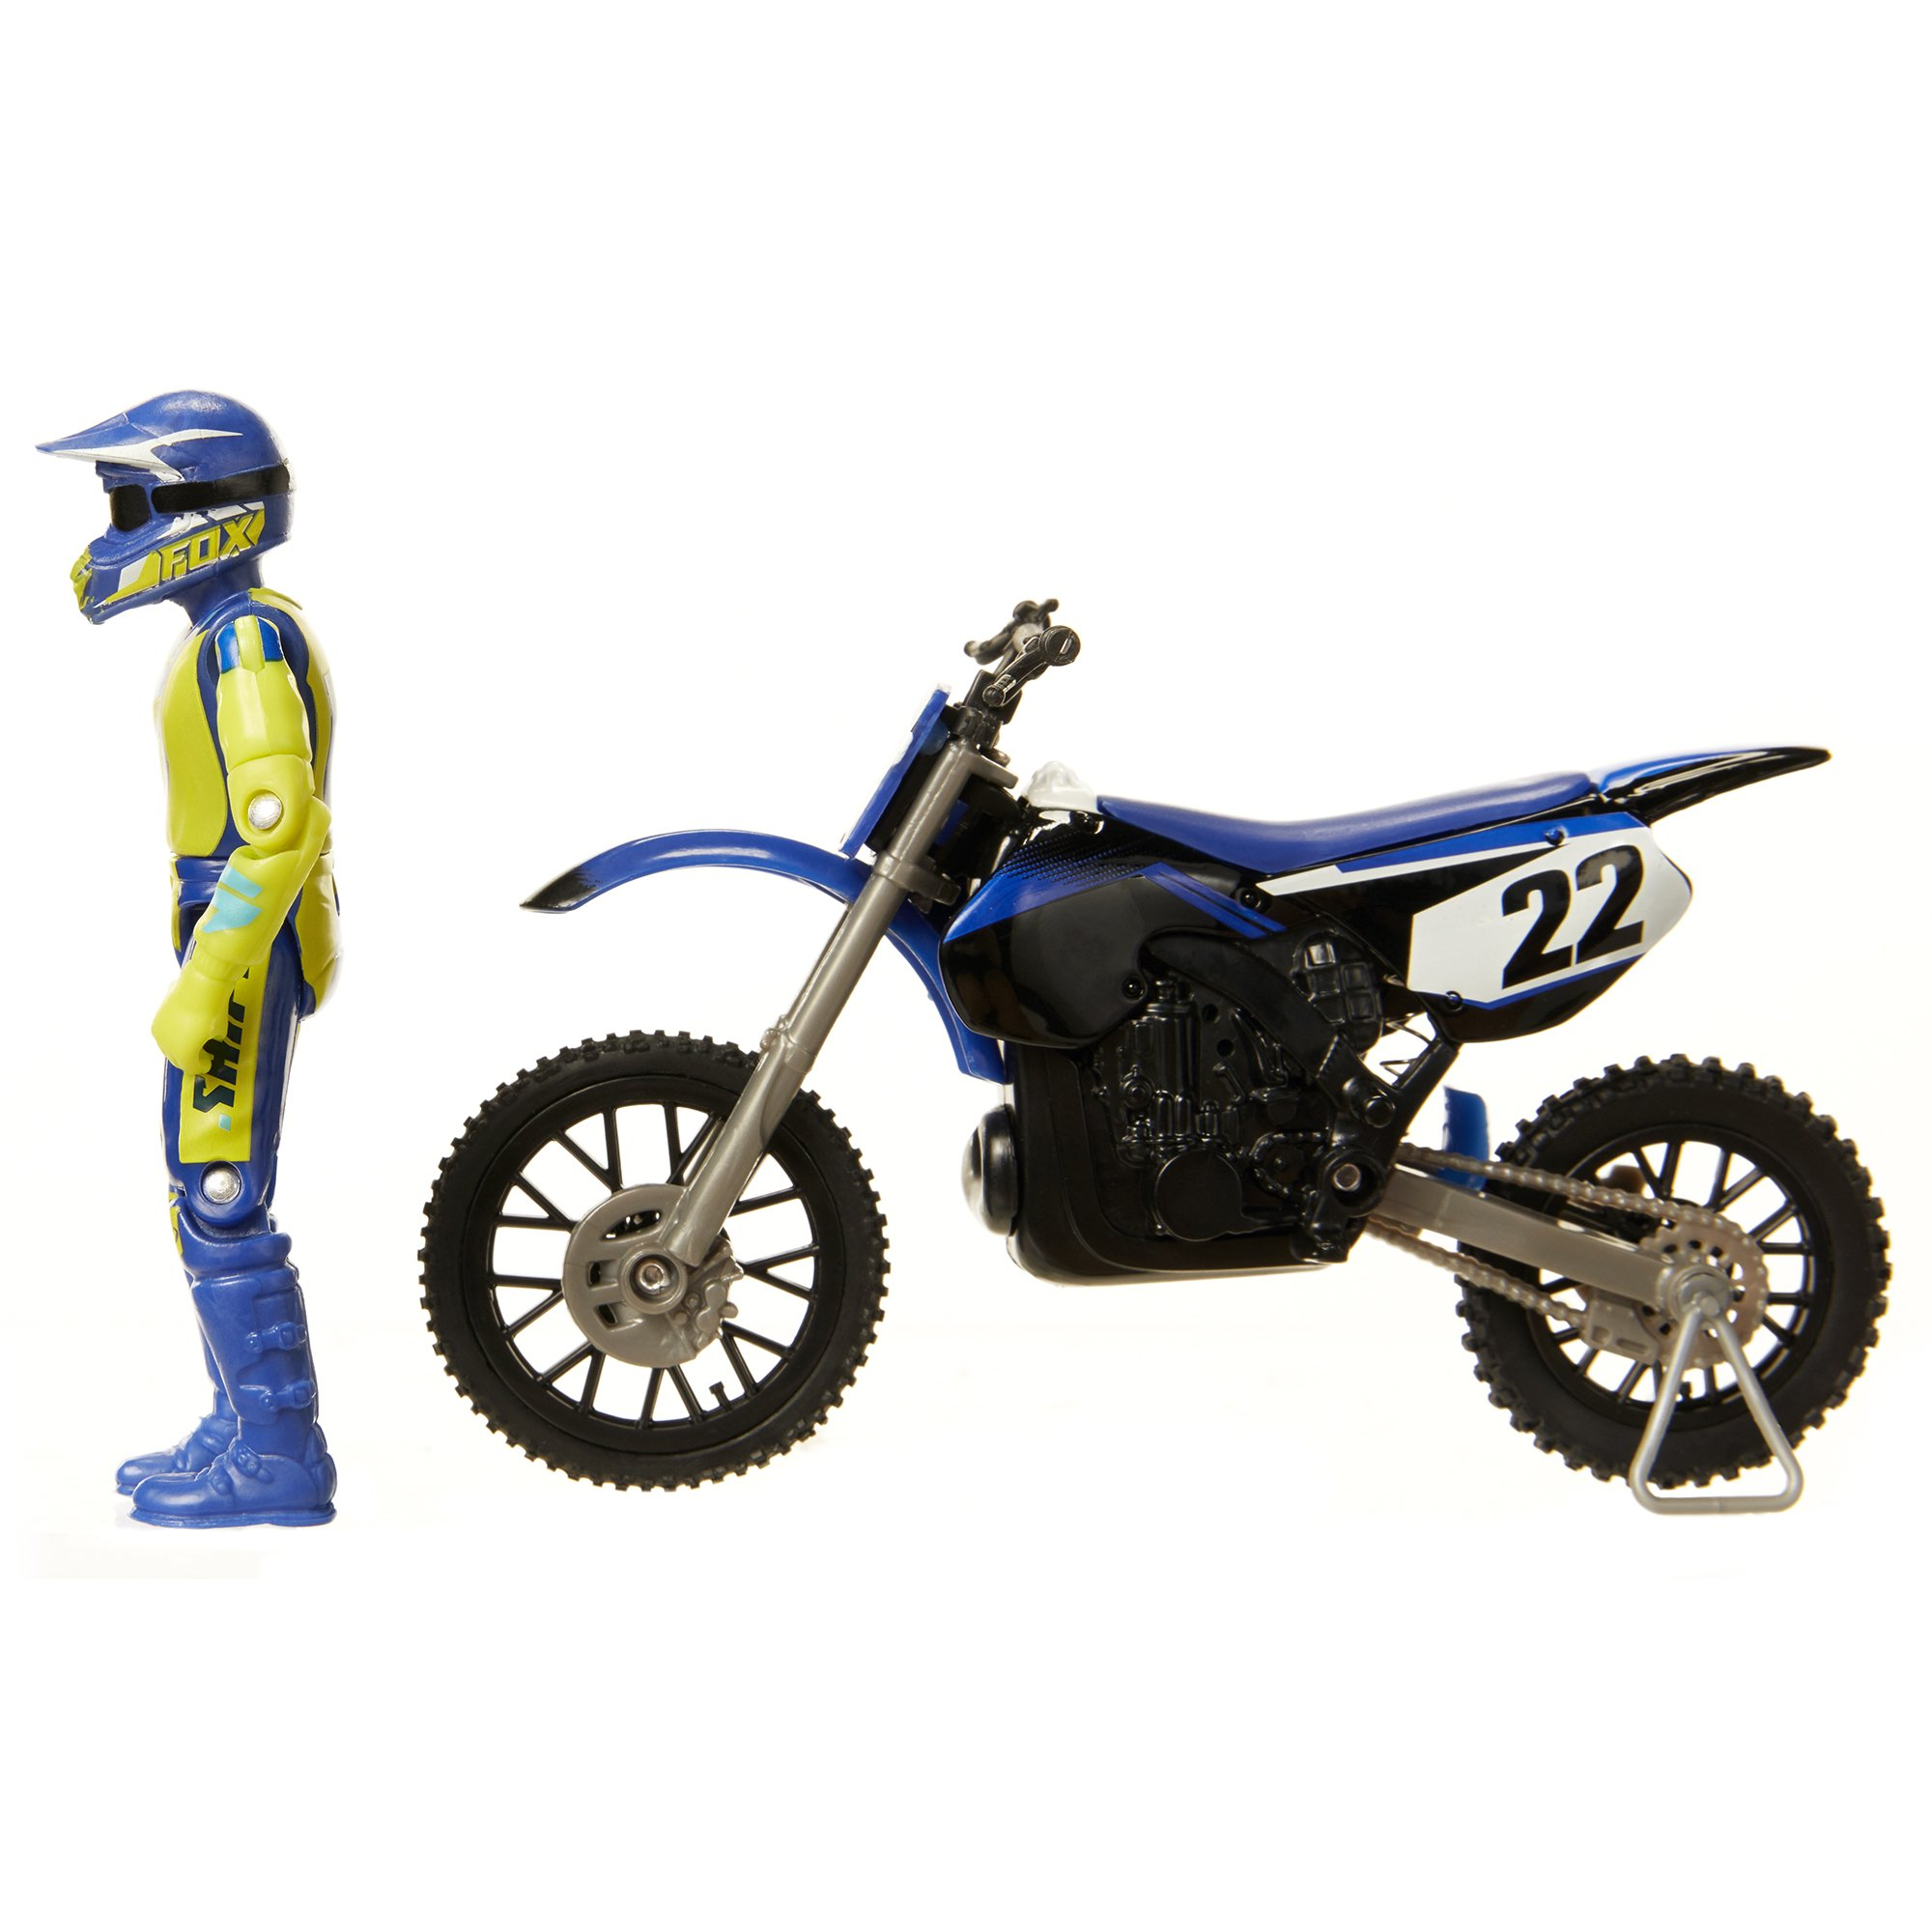 MXS Boys Chad Reed SFX Bike & Rider Set by MXS (Image #9)